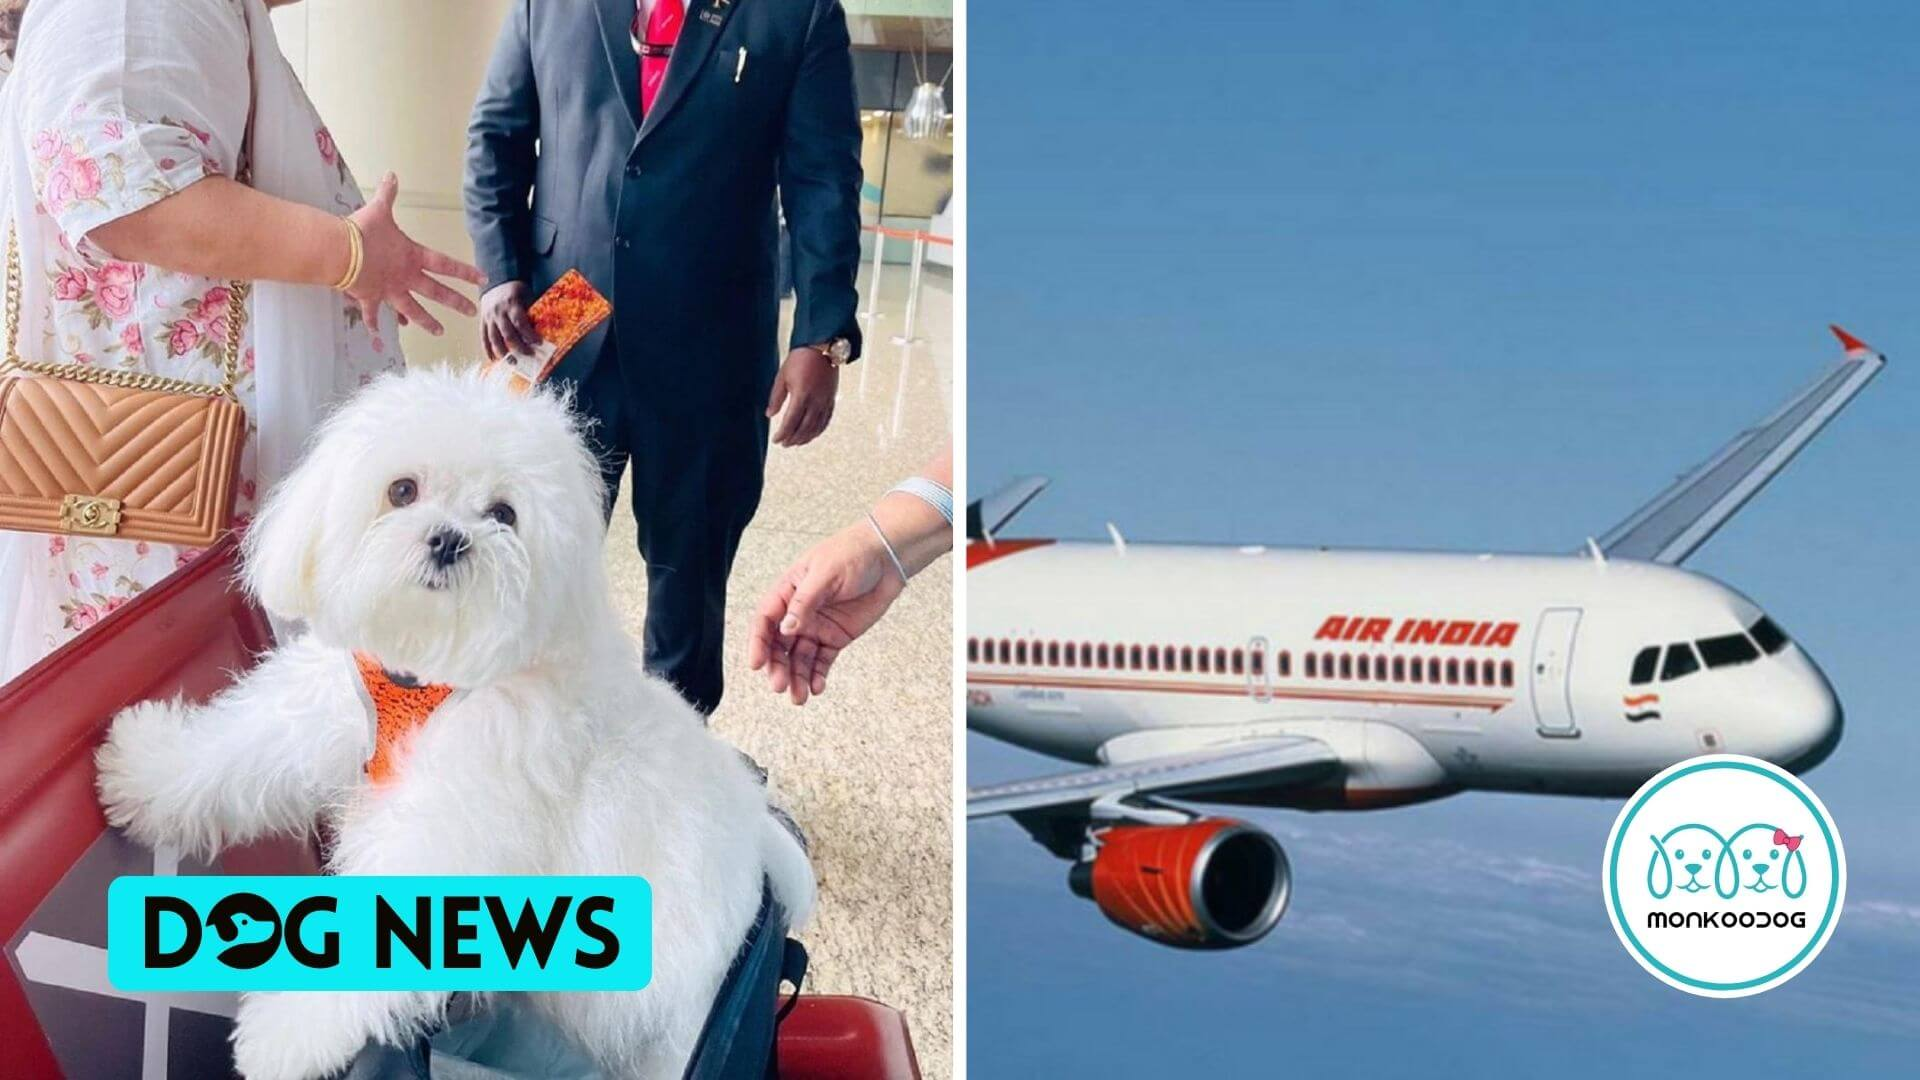 Dog Owner Booked Entire Air